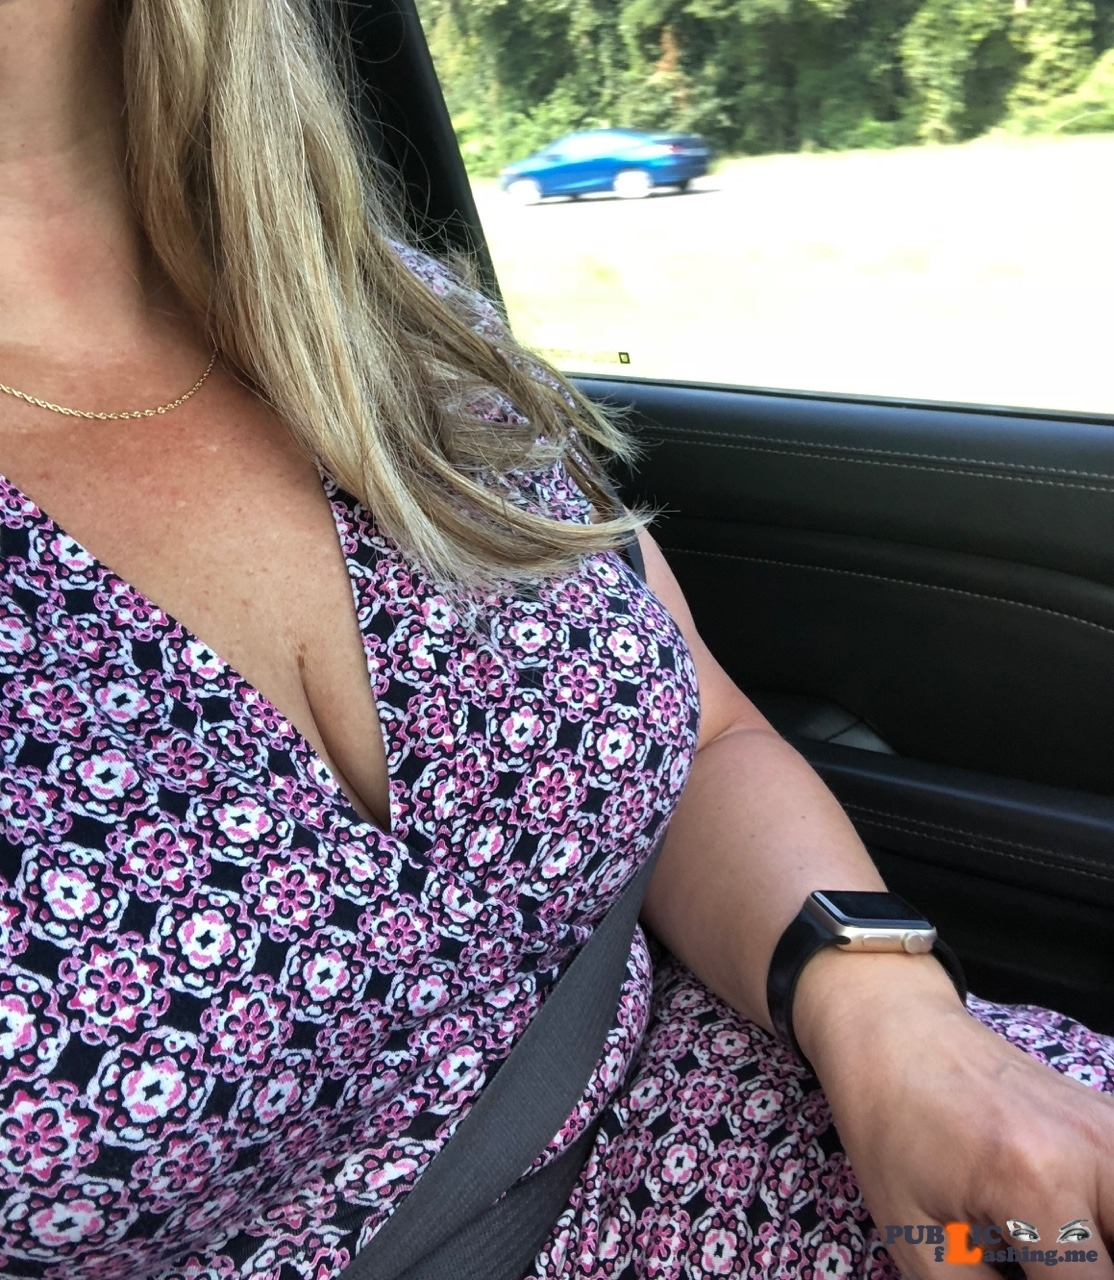 No panties 1luckyhotwife: Nothing like a long drive filled with anticipation!Being a LUCKY ? HOTWIFE allows me… pantiesless